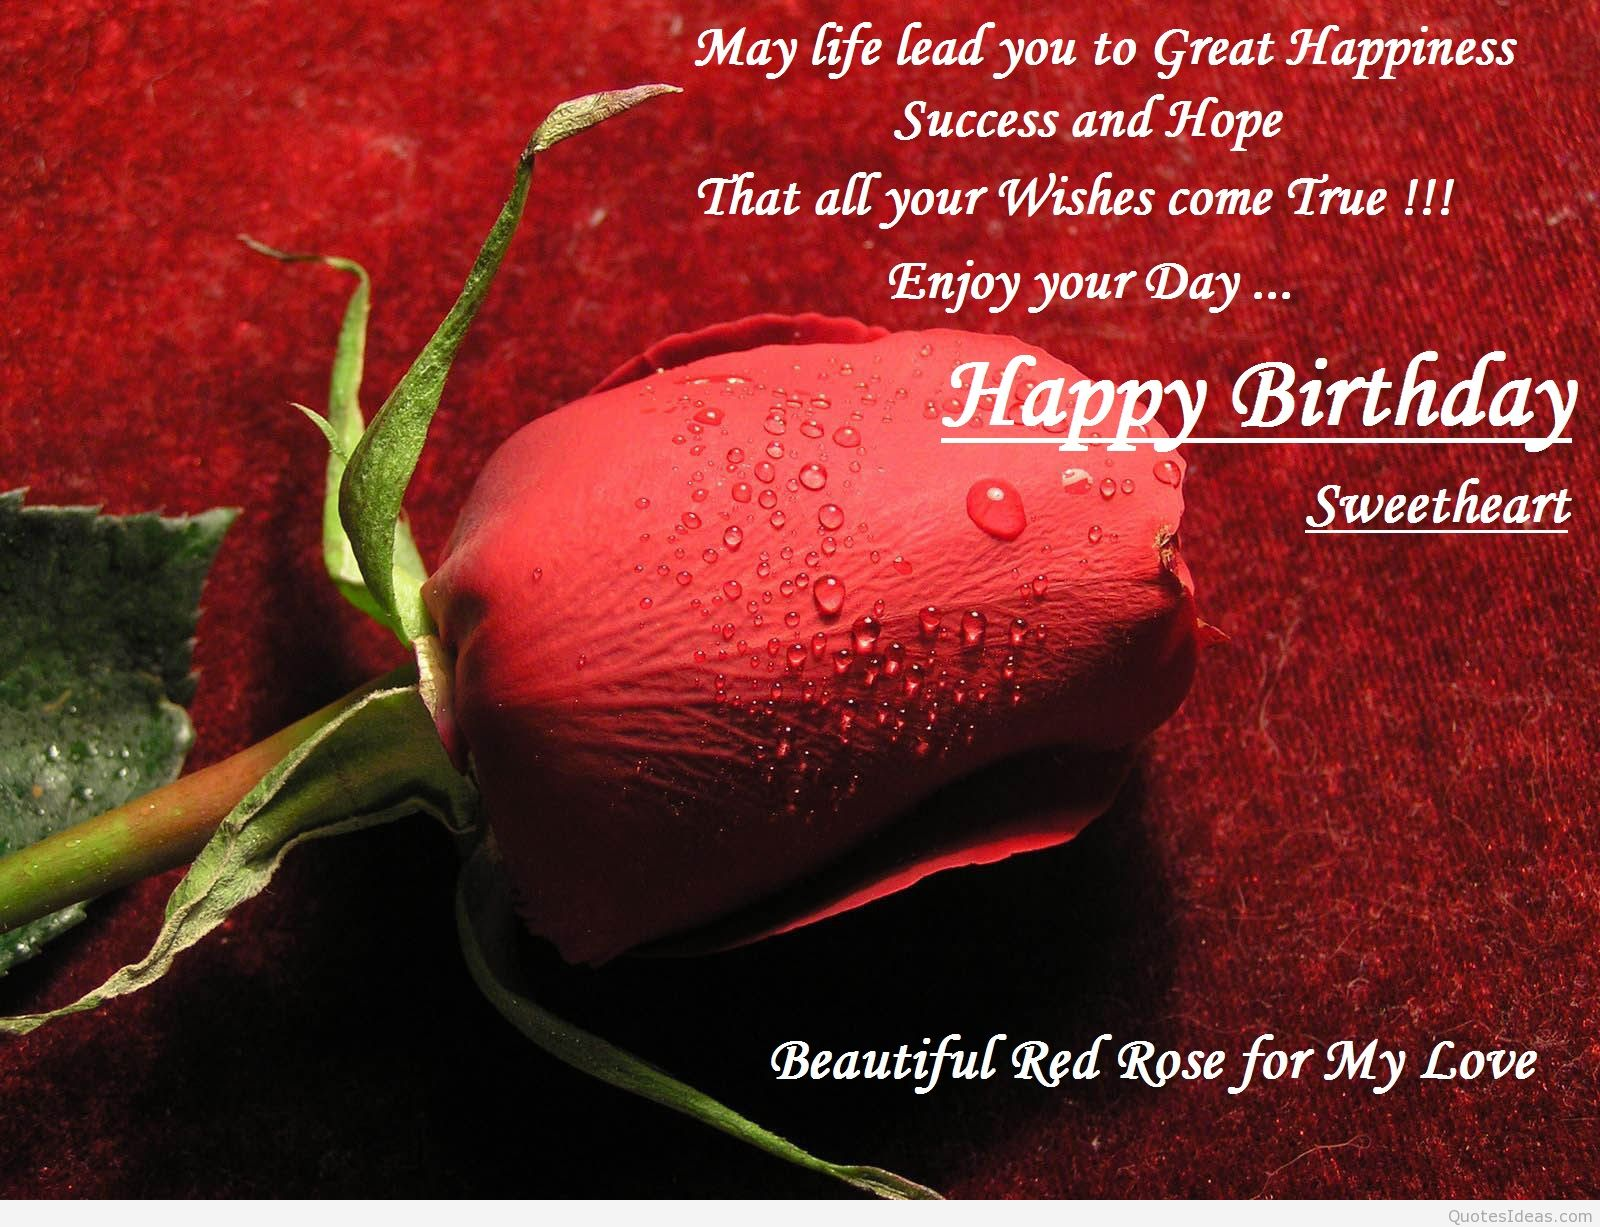 may life lead you to great happiness sucess and hope that all your wishes come true enjoy your day... happy birthday sweetheart beautiful red rose for my love.